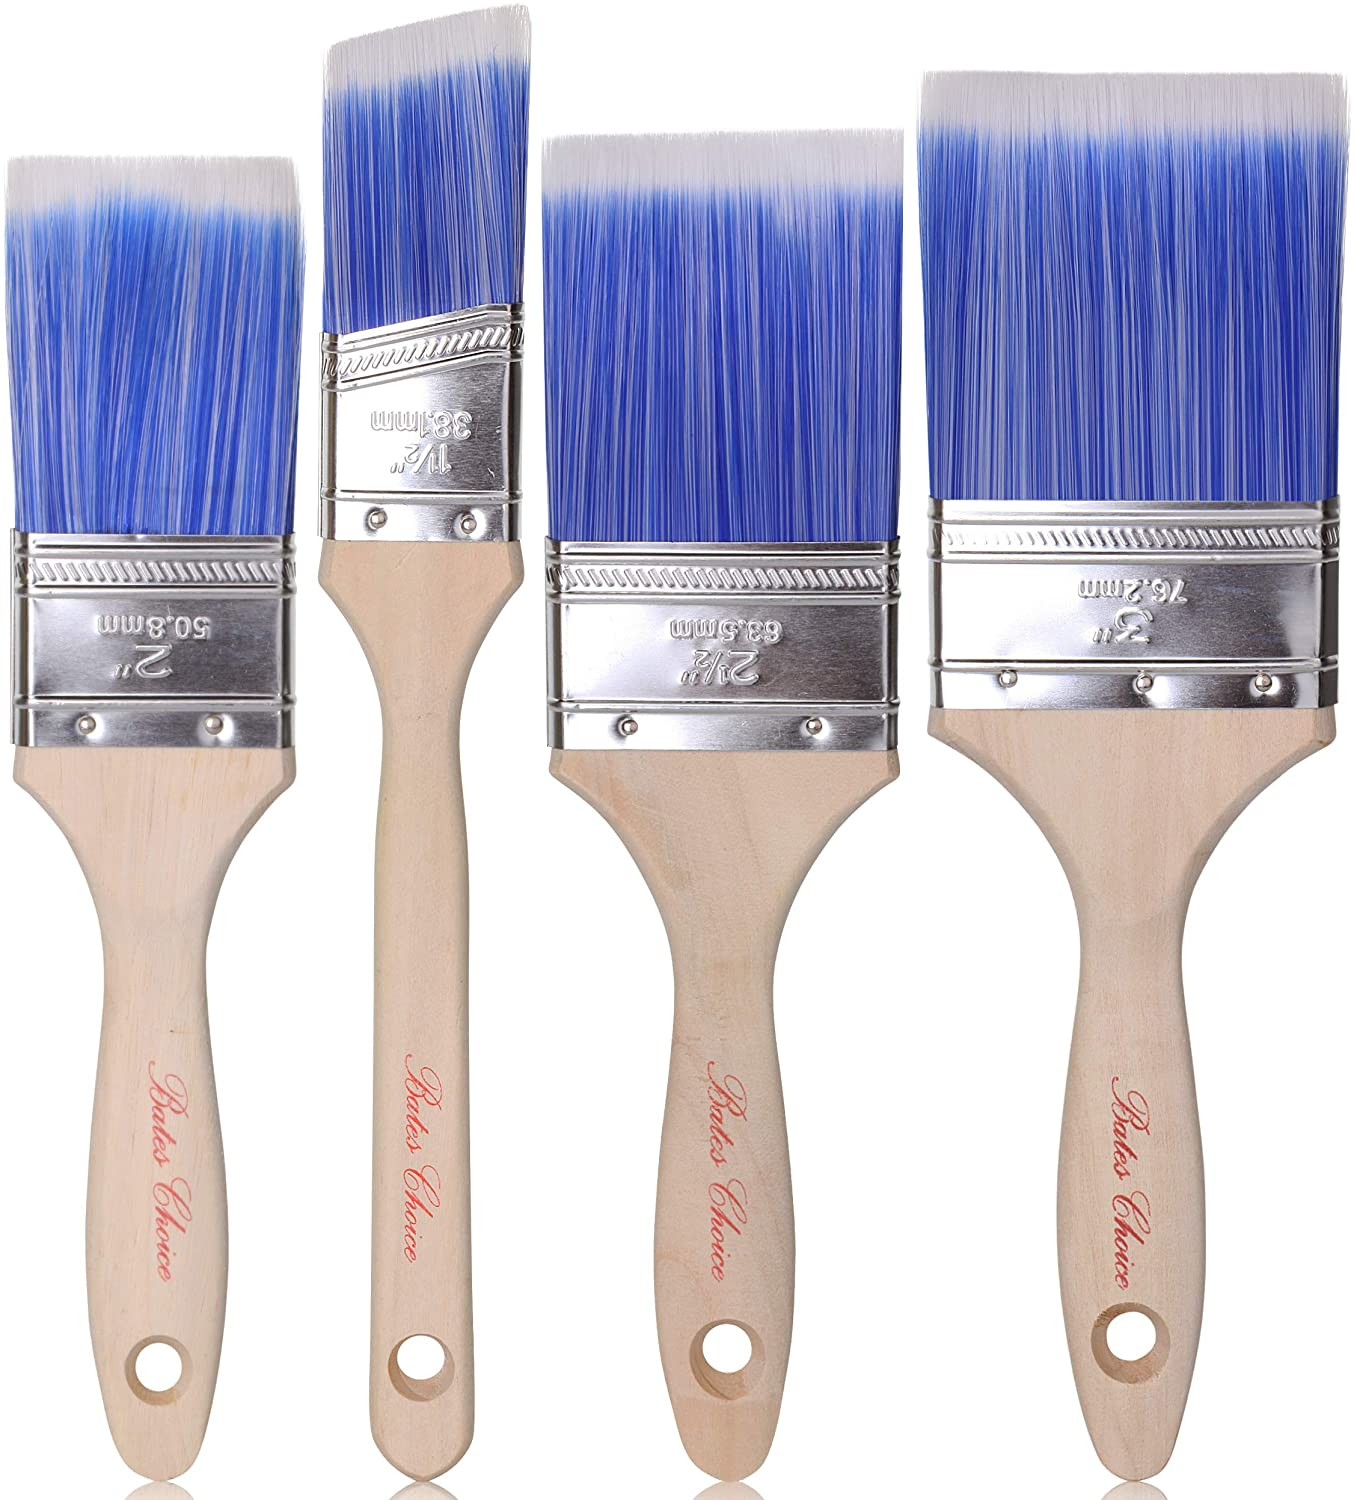 Bates Paint Brushes - 4 Pack, Treated Wood Handle, Paint Brush, Paint Brushes Set, Professional Brush Set, Trim Paint Brush, Paintbrush, Small Paint Brush, Stain Brush: Home & Kitchen